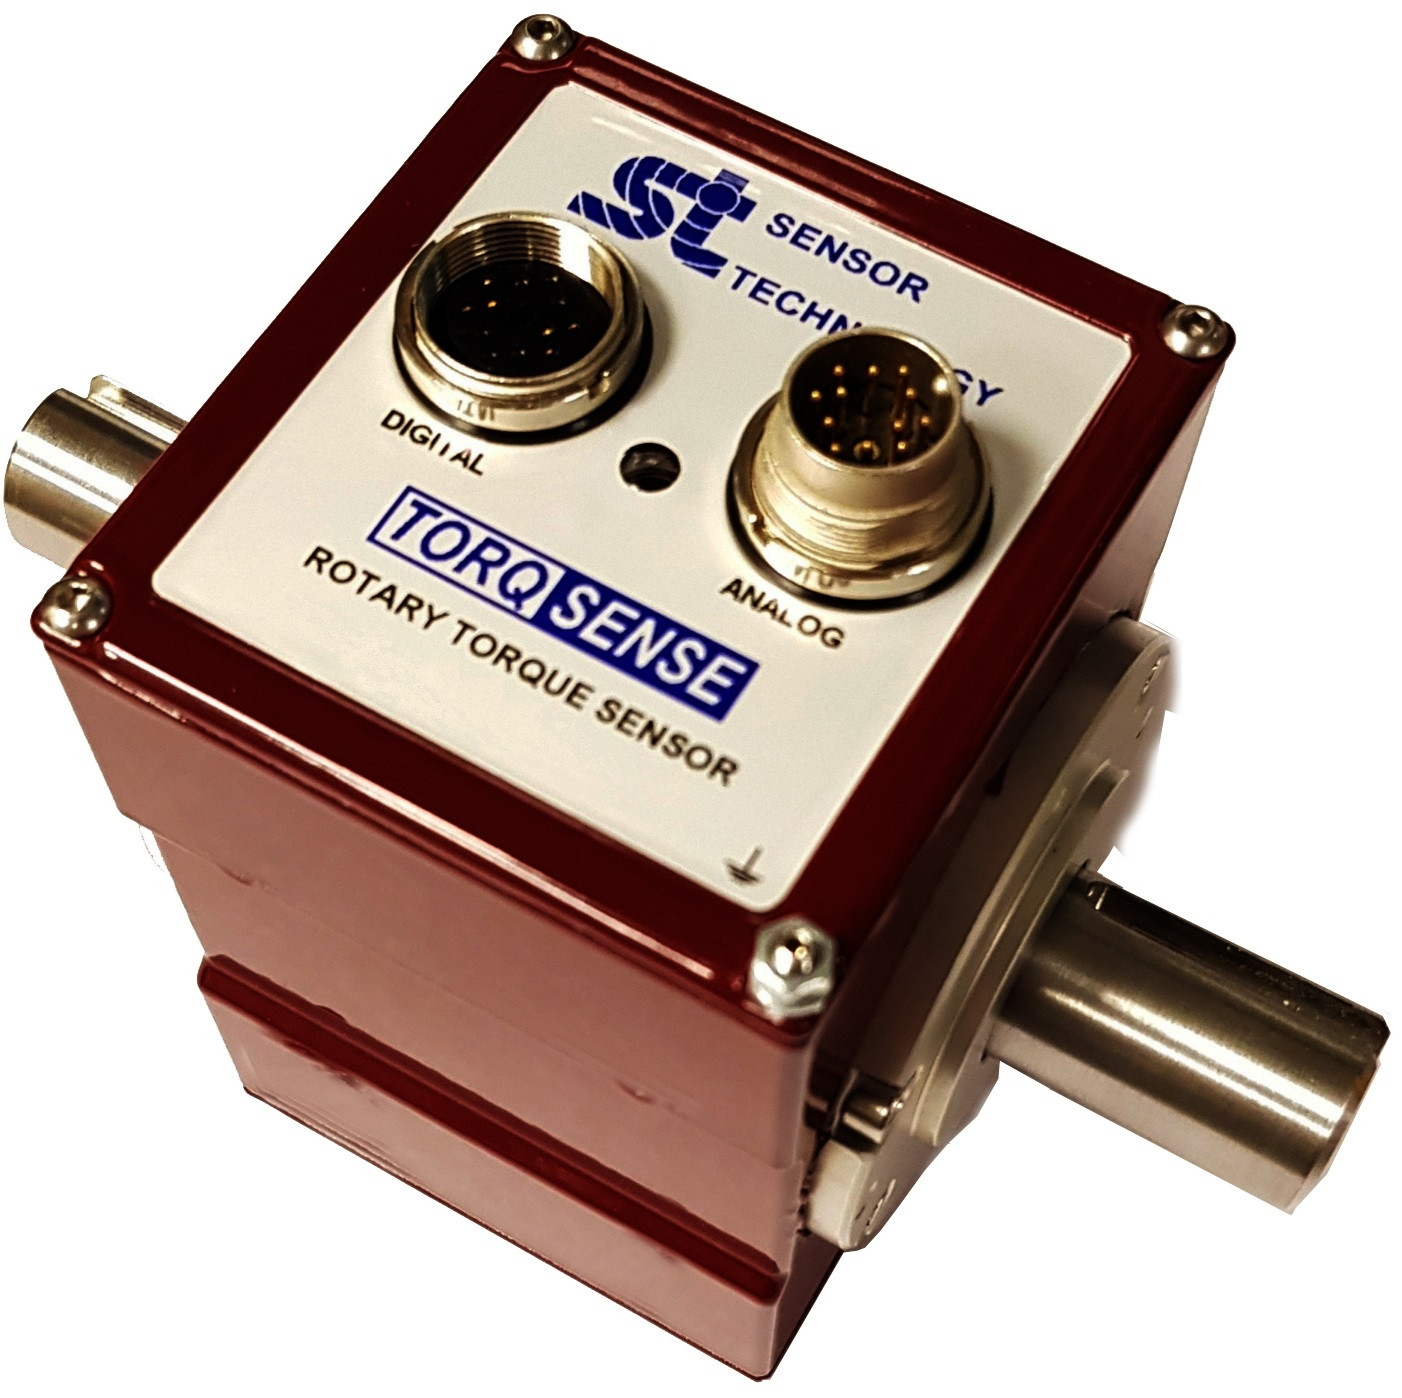 SGR Series Torque Tranducers for Torque, Power and RPM Monitoring